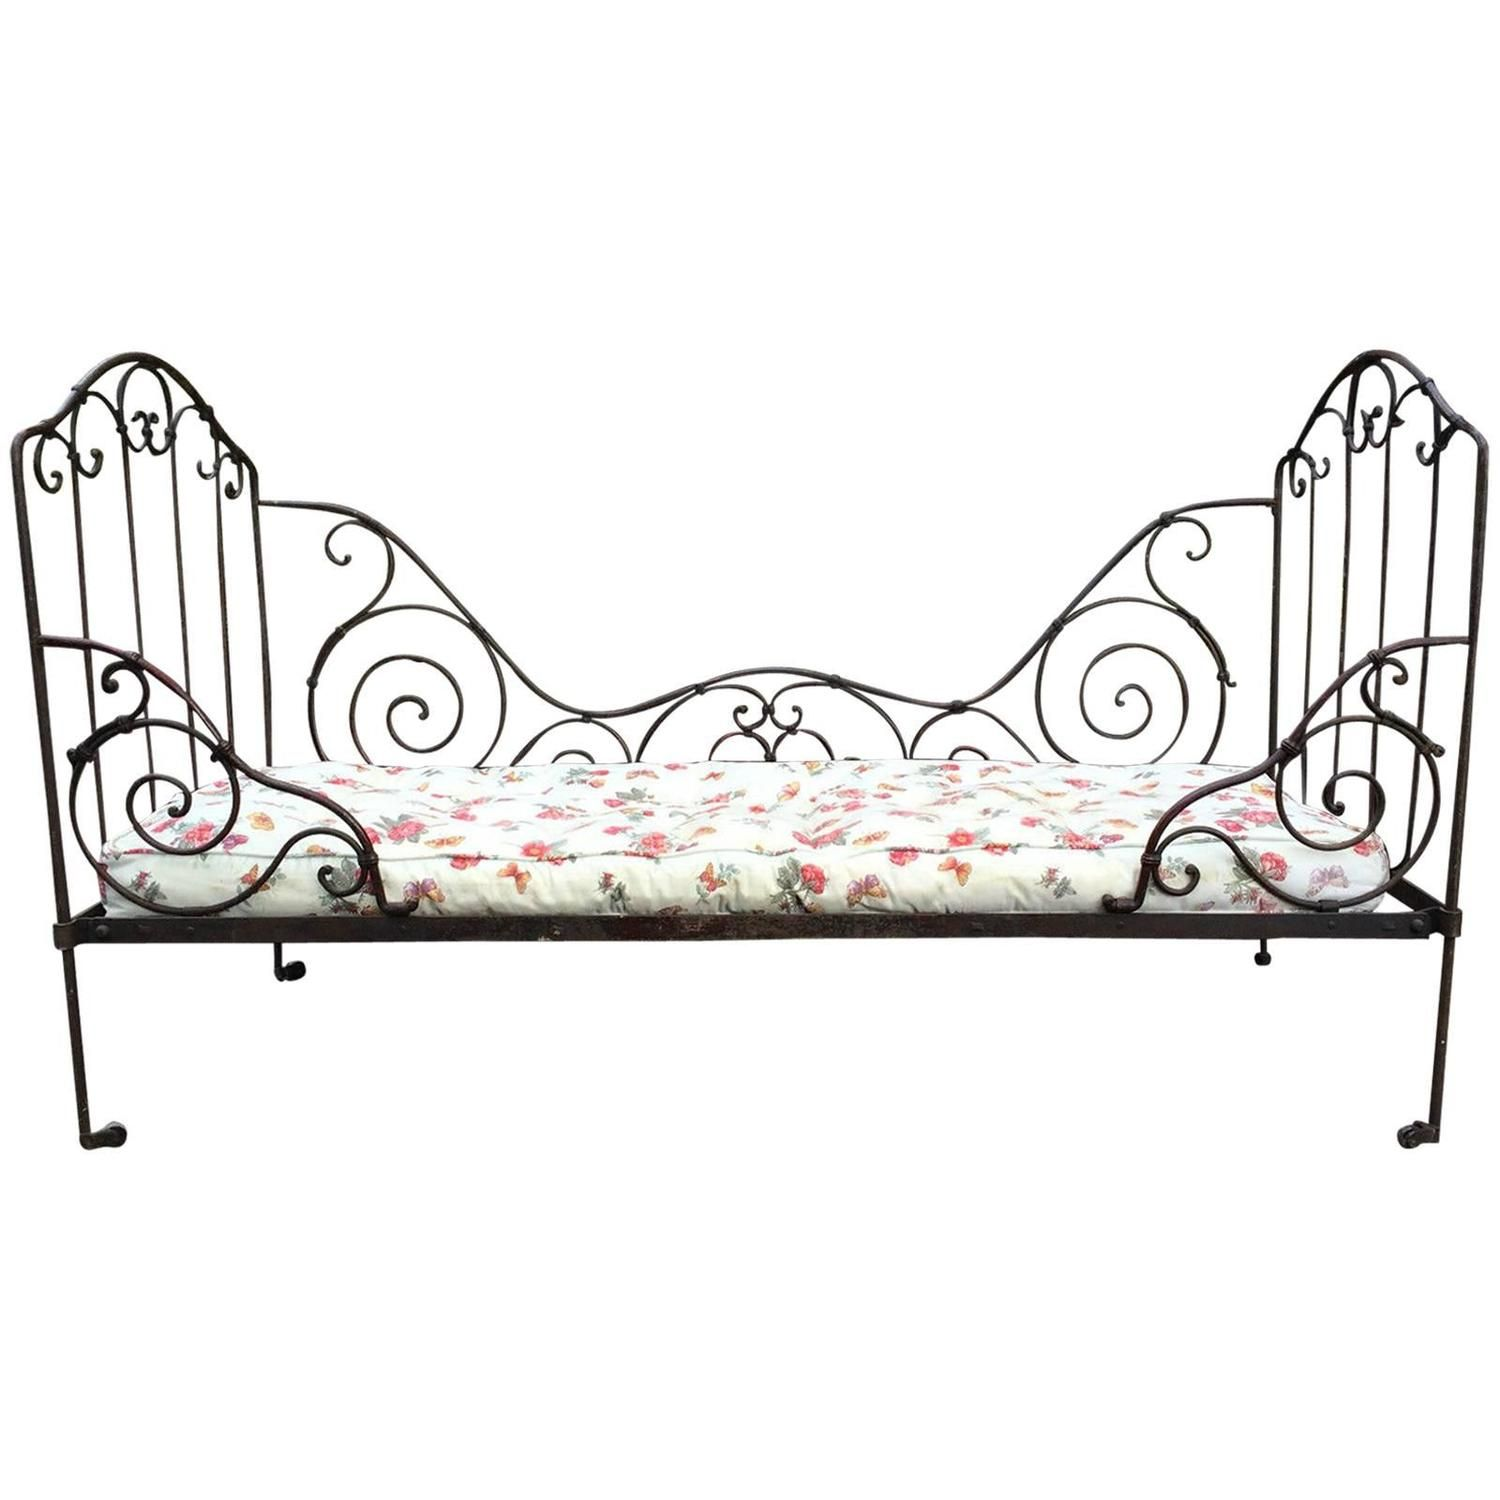 French Antique Victorian Daybed 19th Century Casters Wrought Iron 1stdibs Com Victorian Daybeds Iron Chair French Antiques